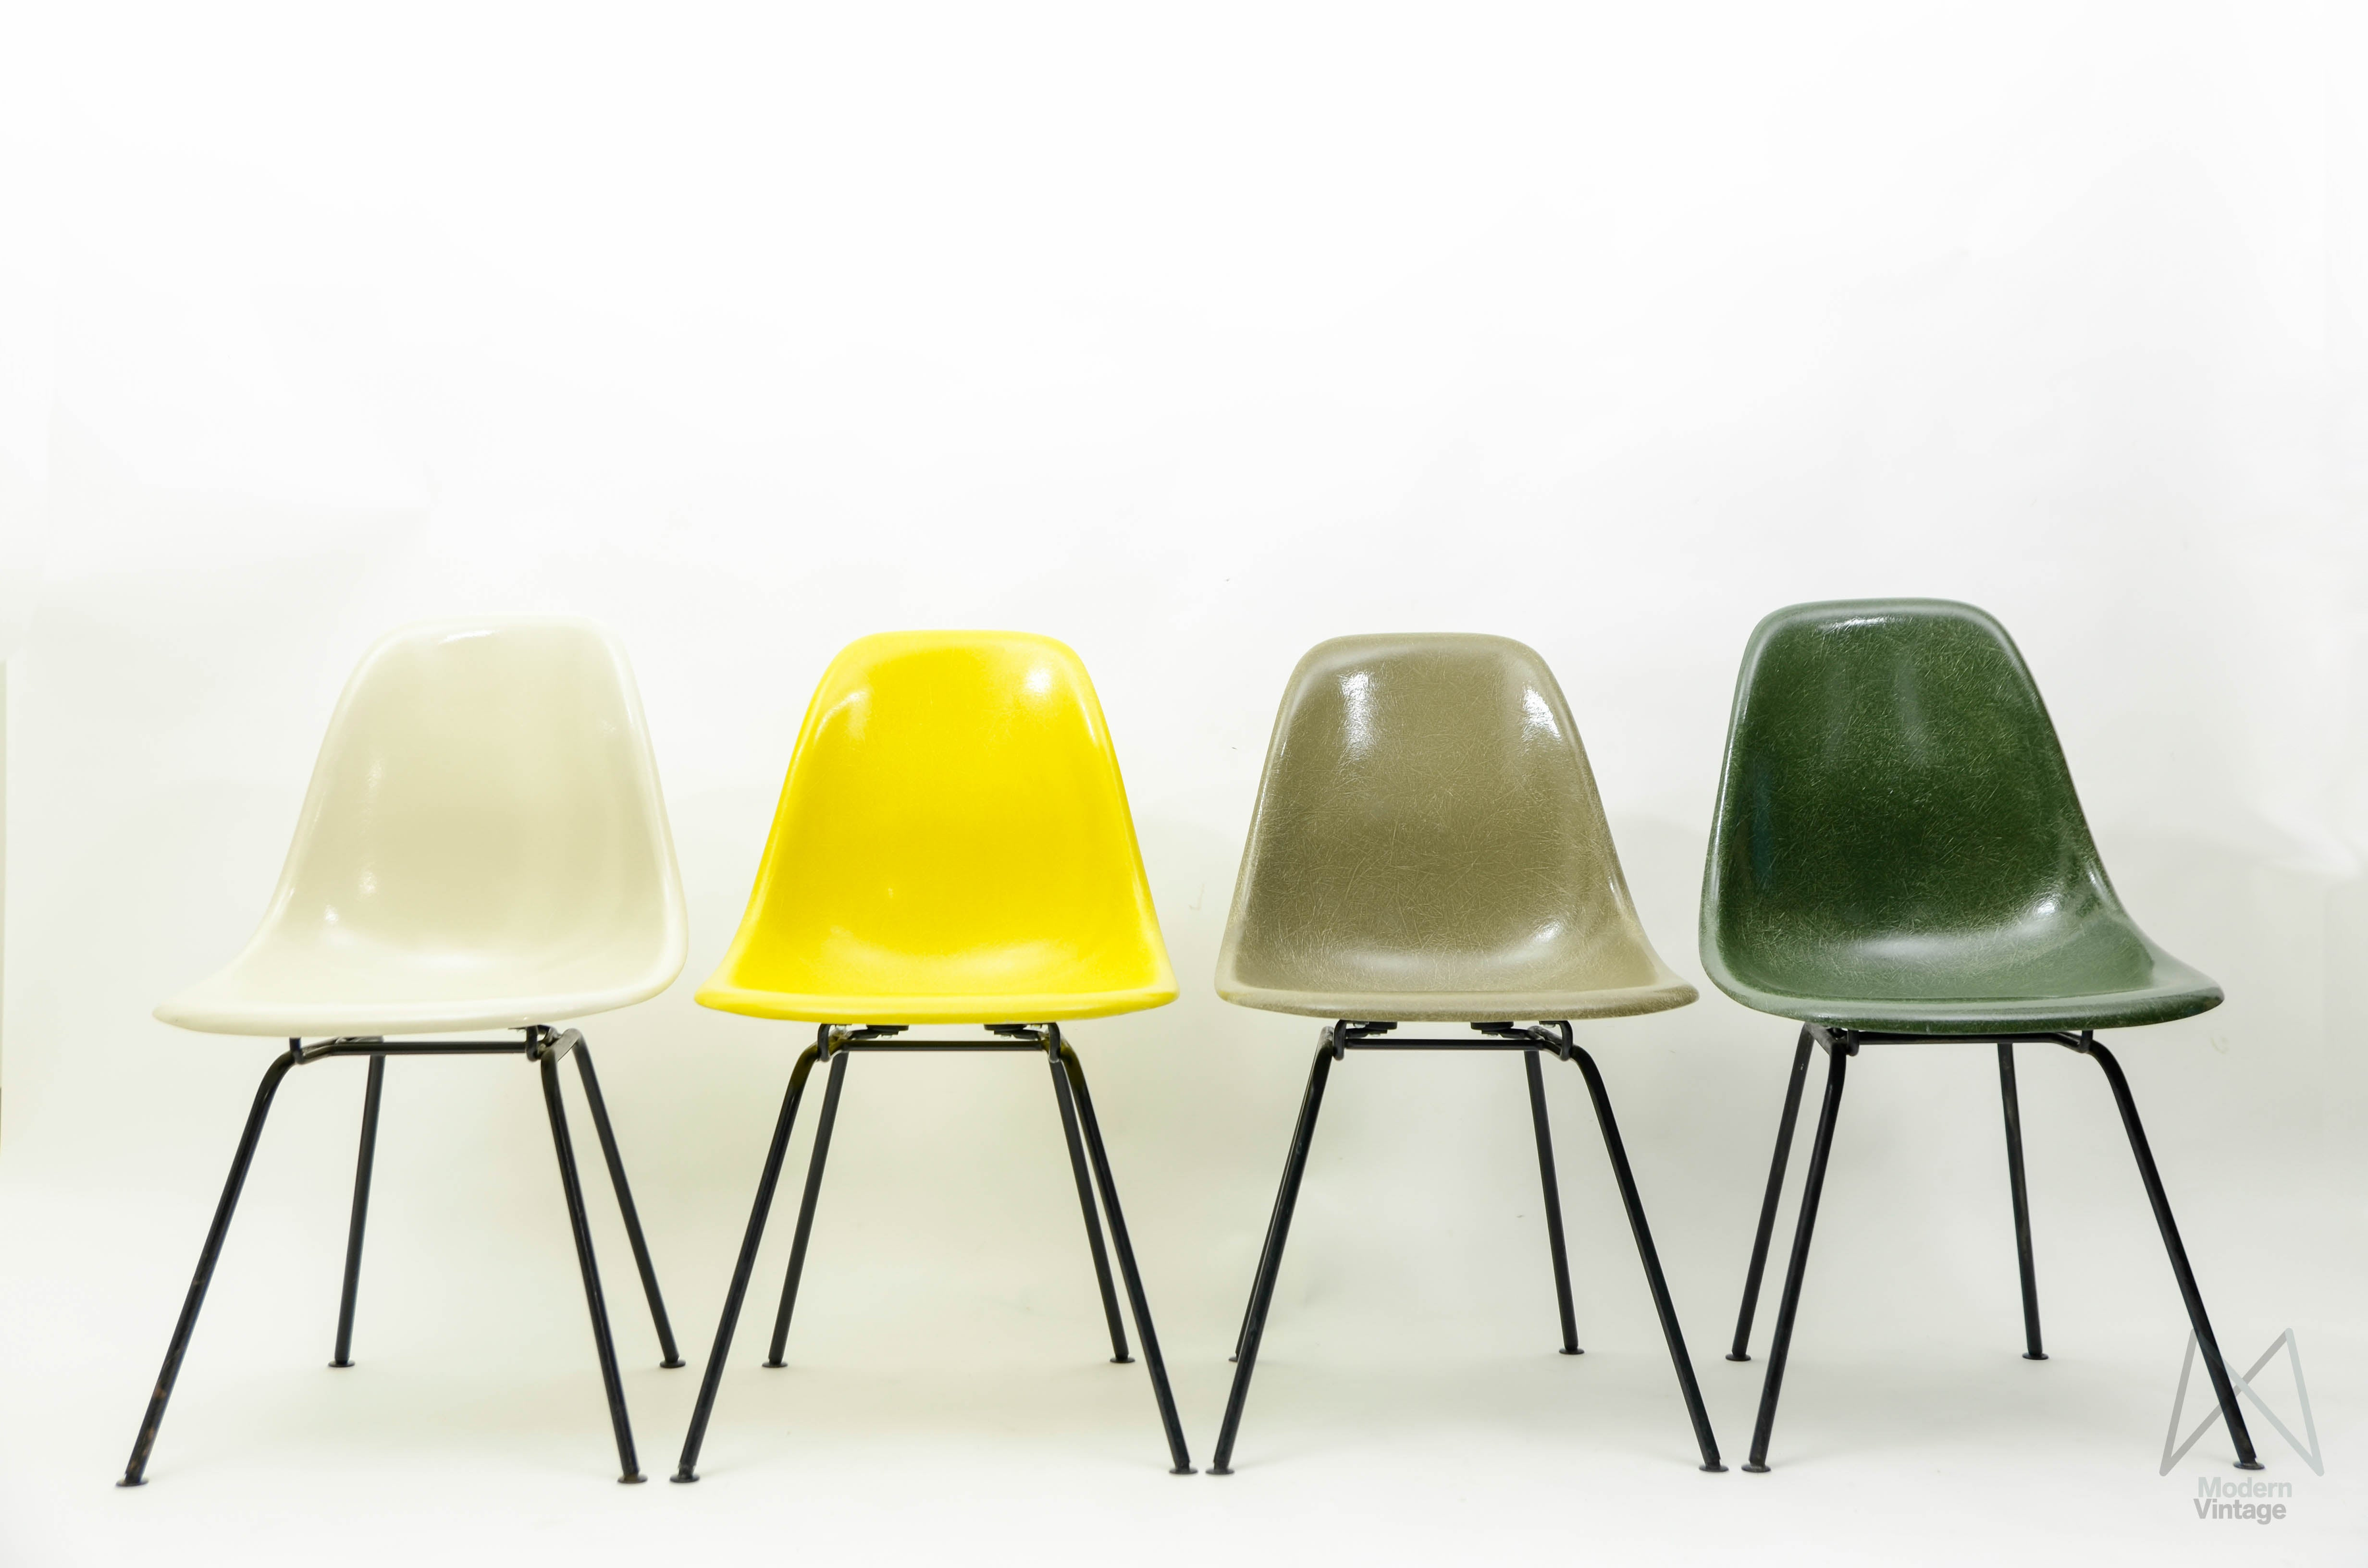 Image of eames original herman miller fiberglass dsw chair set yellow green  tonesVintage Eames Chair  Price Per Piece  The  Original Peach 2nd  . Eames Dsw Chair Green. Home Design Ideas